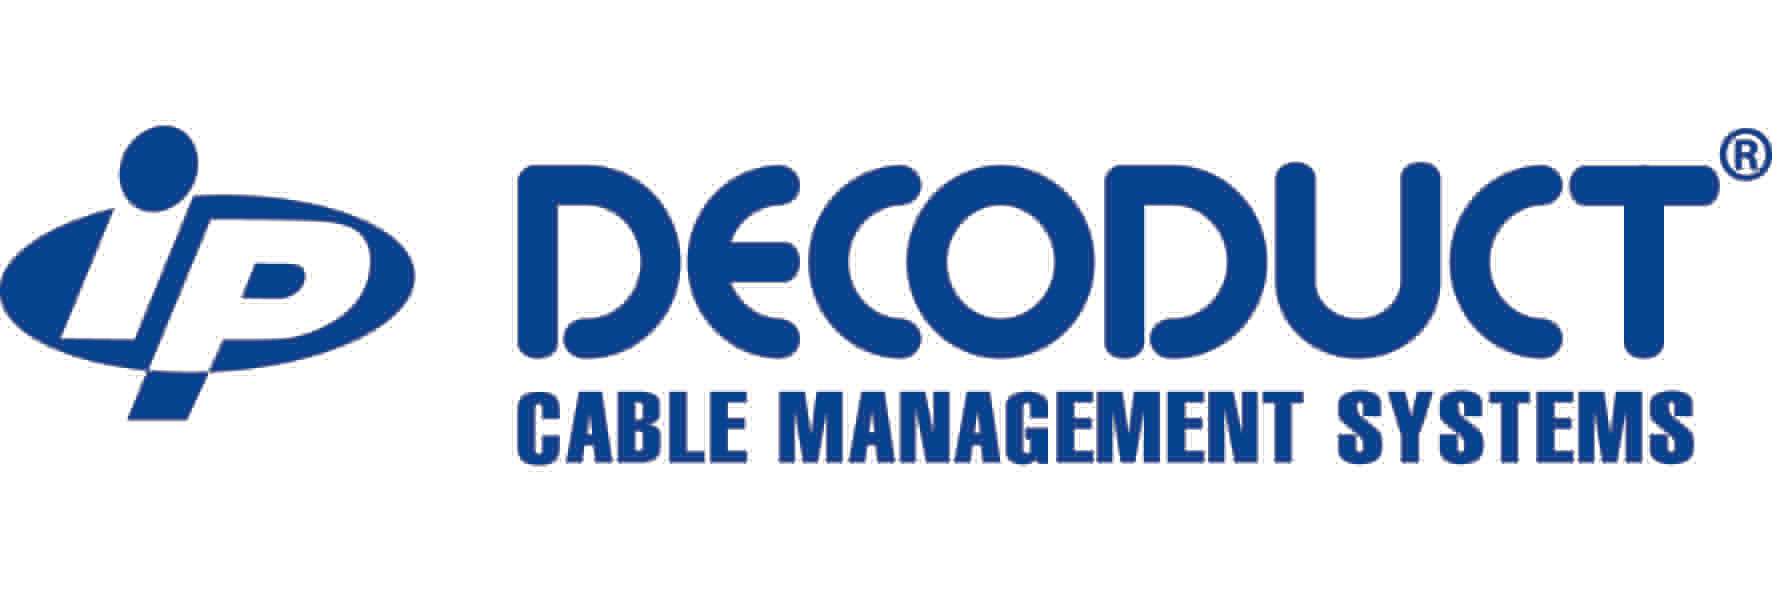 IP Decocoduct Logo